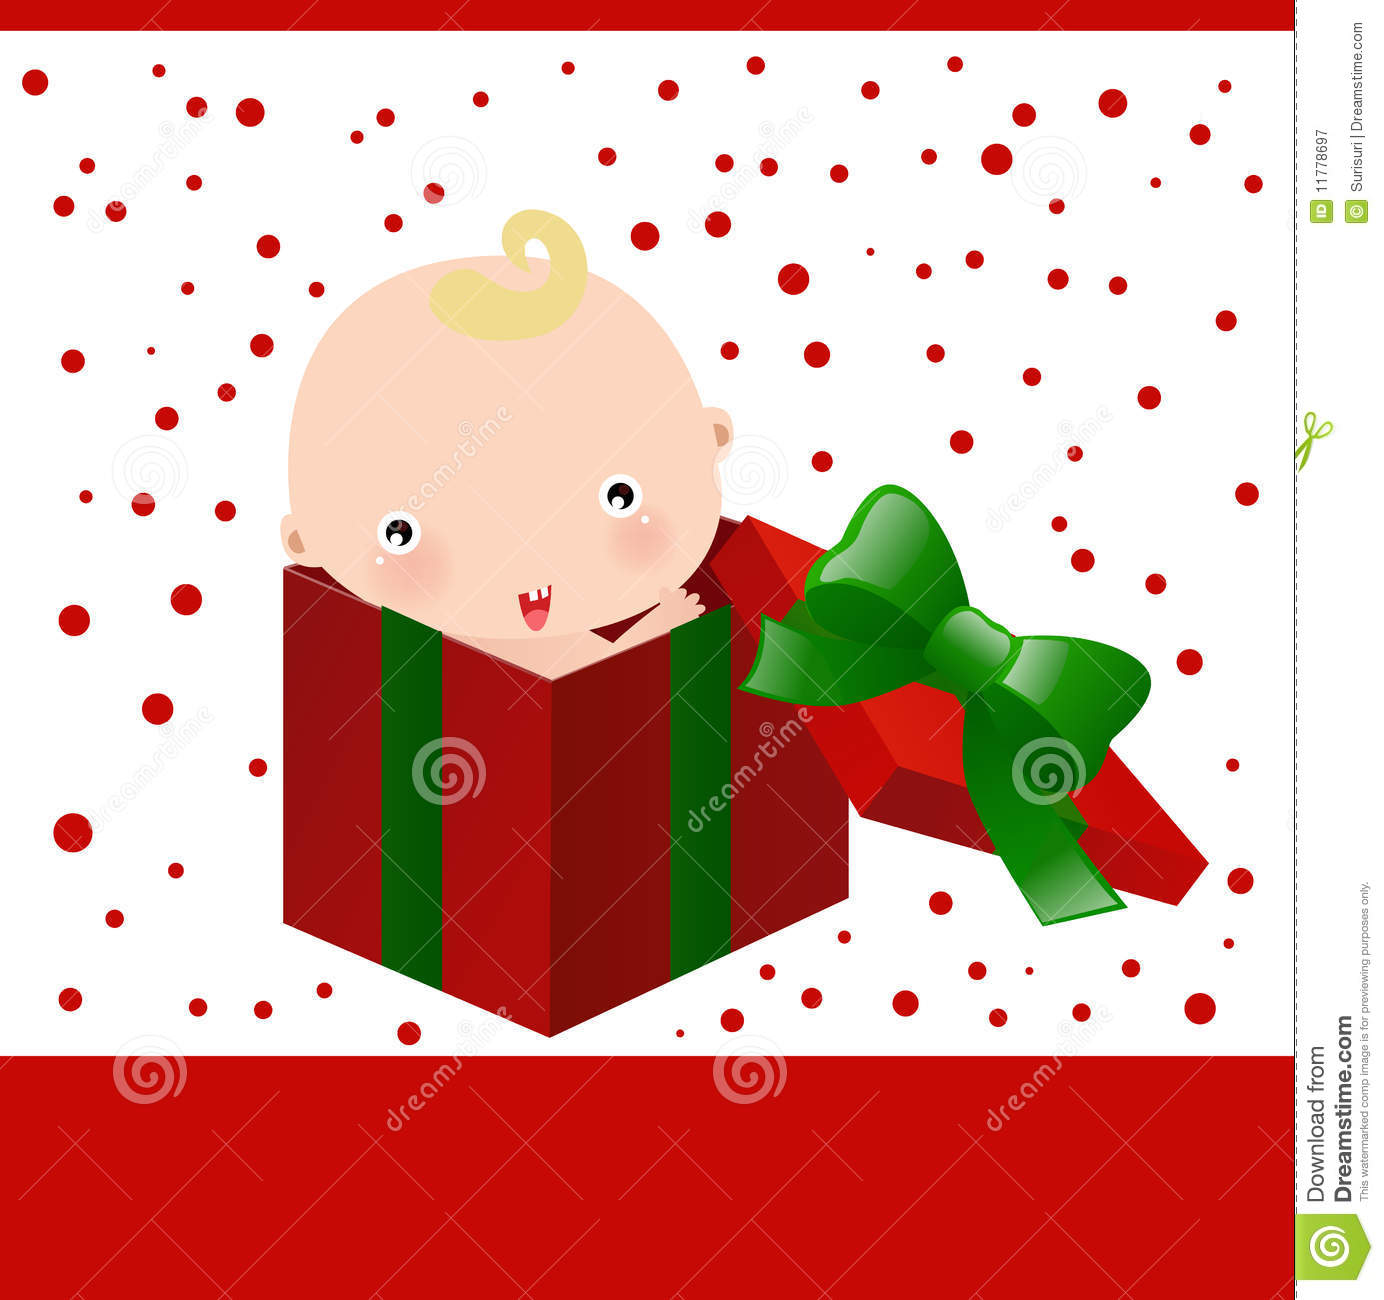 Baby And Christmas Gift Box Stock Vector - Illustration of present ...